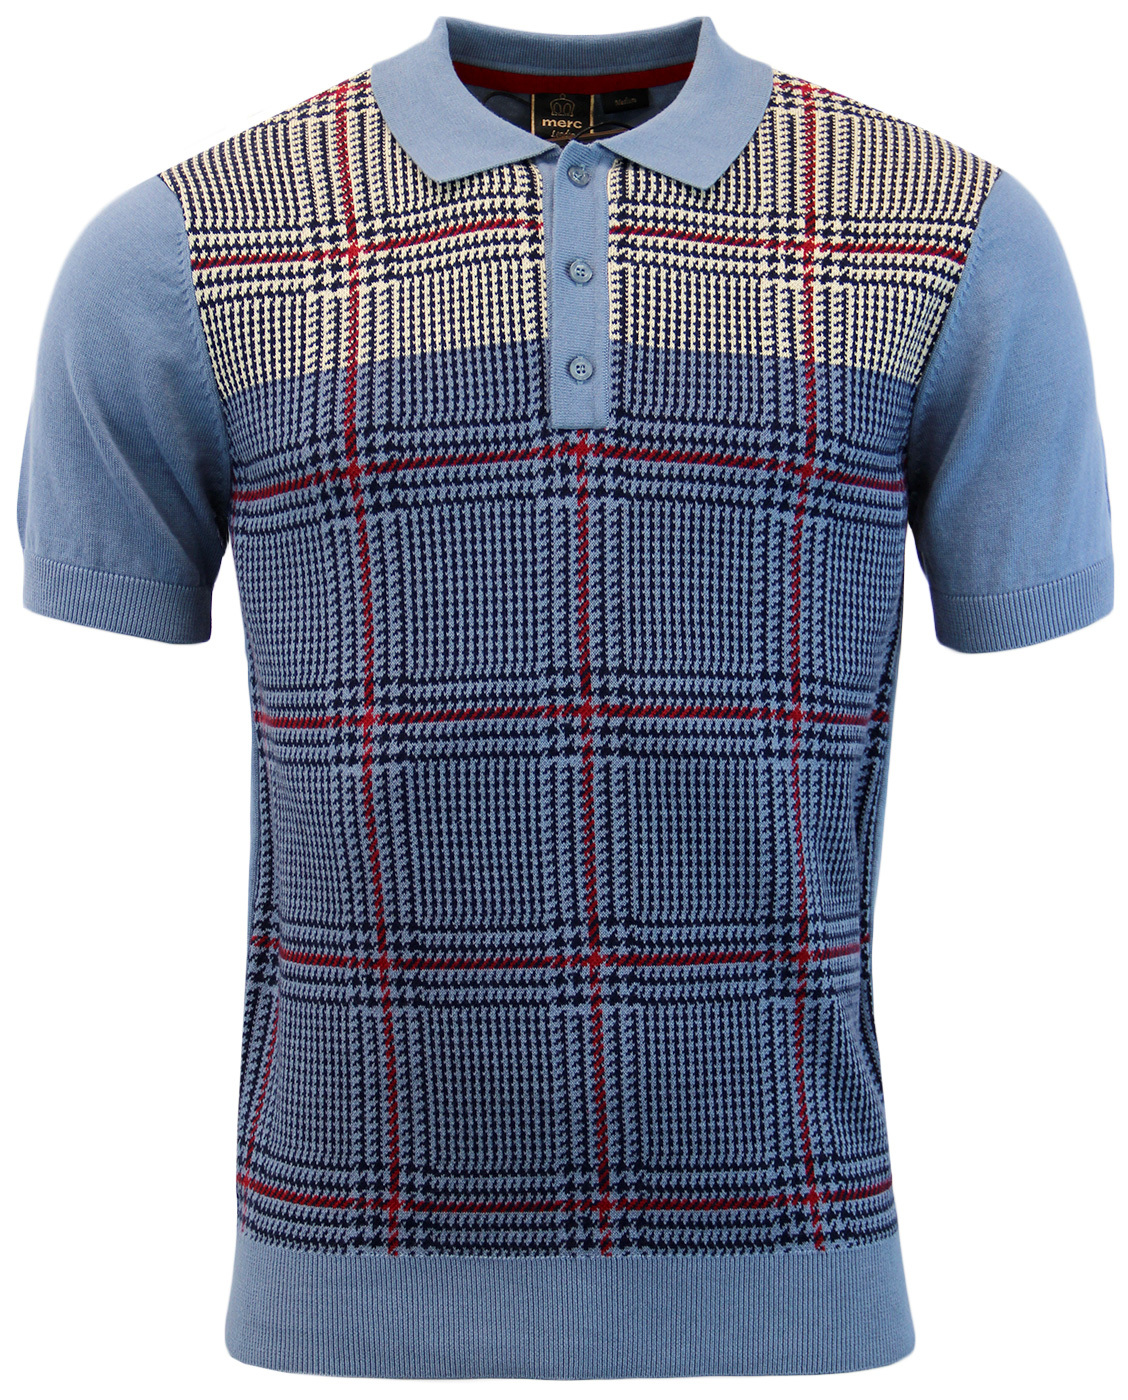 547c295afb56 MERC Tetley 1960s Prince Of Wales Check Knit Polo in Vintage Blue